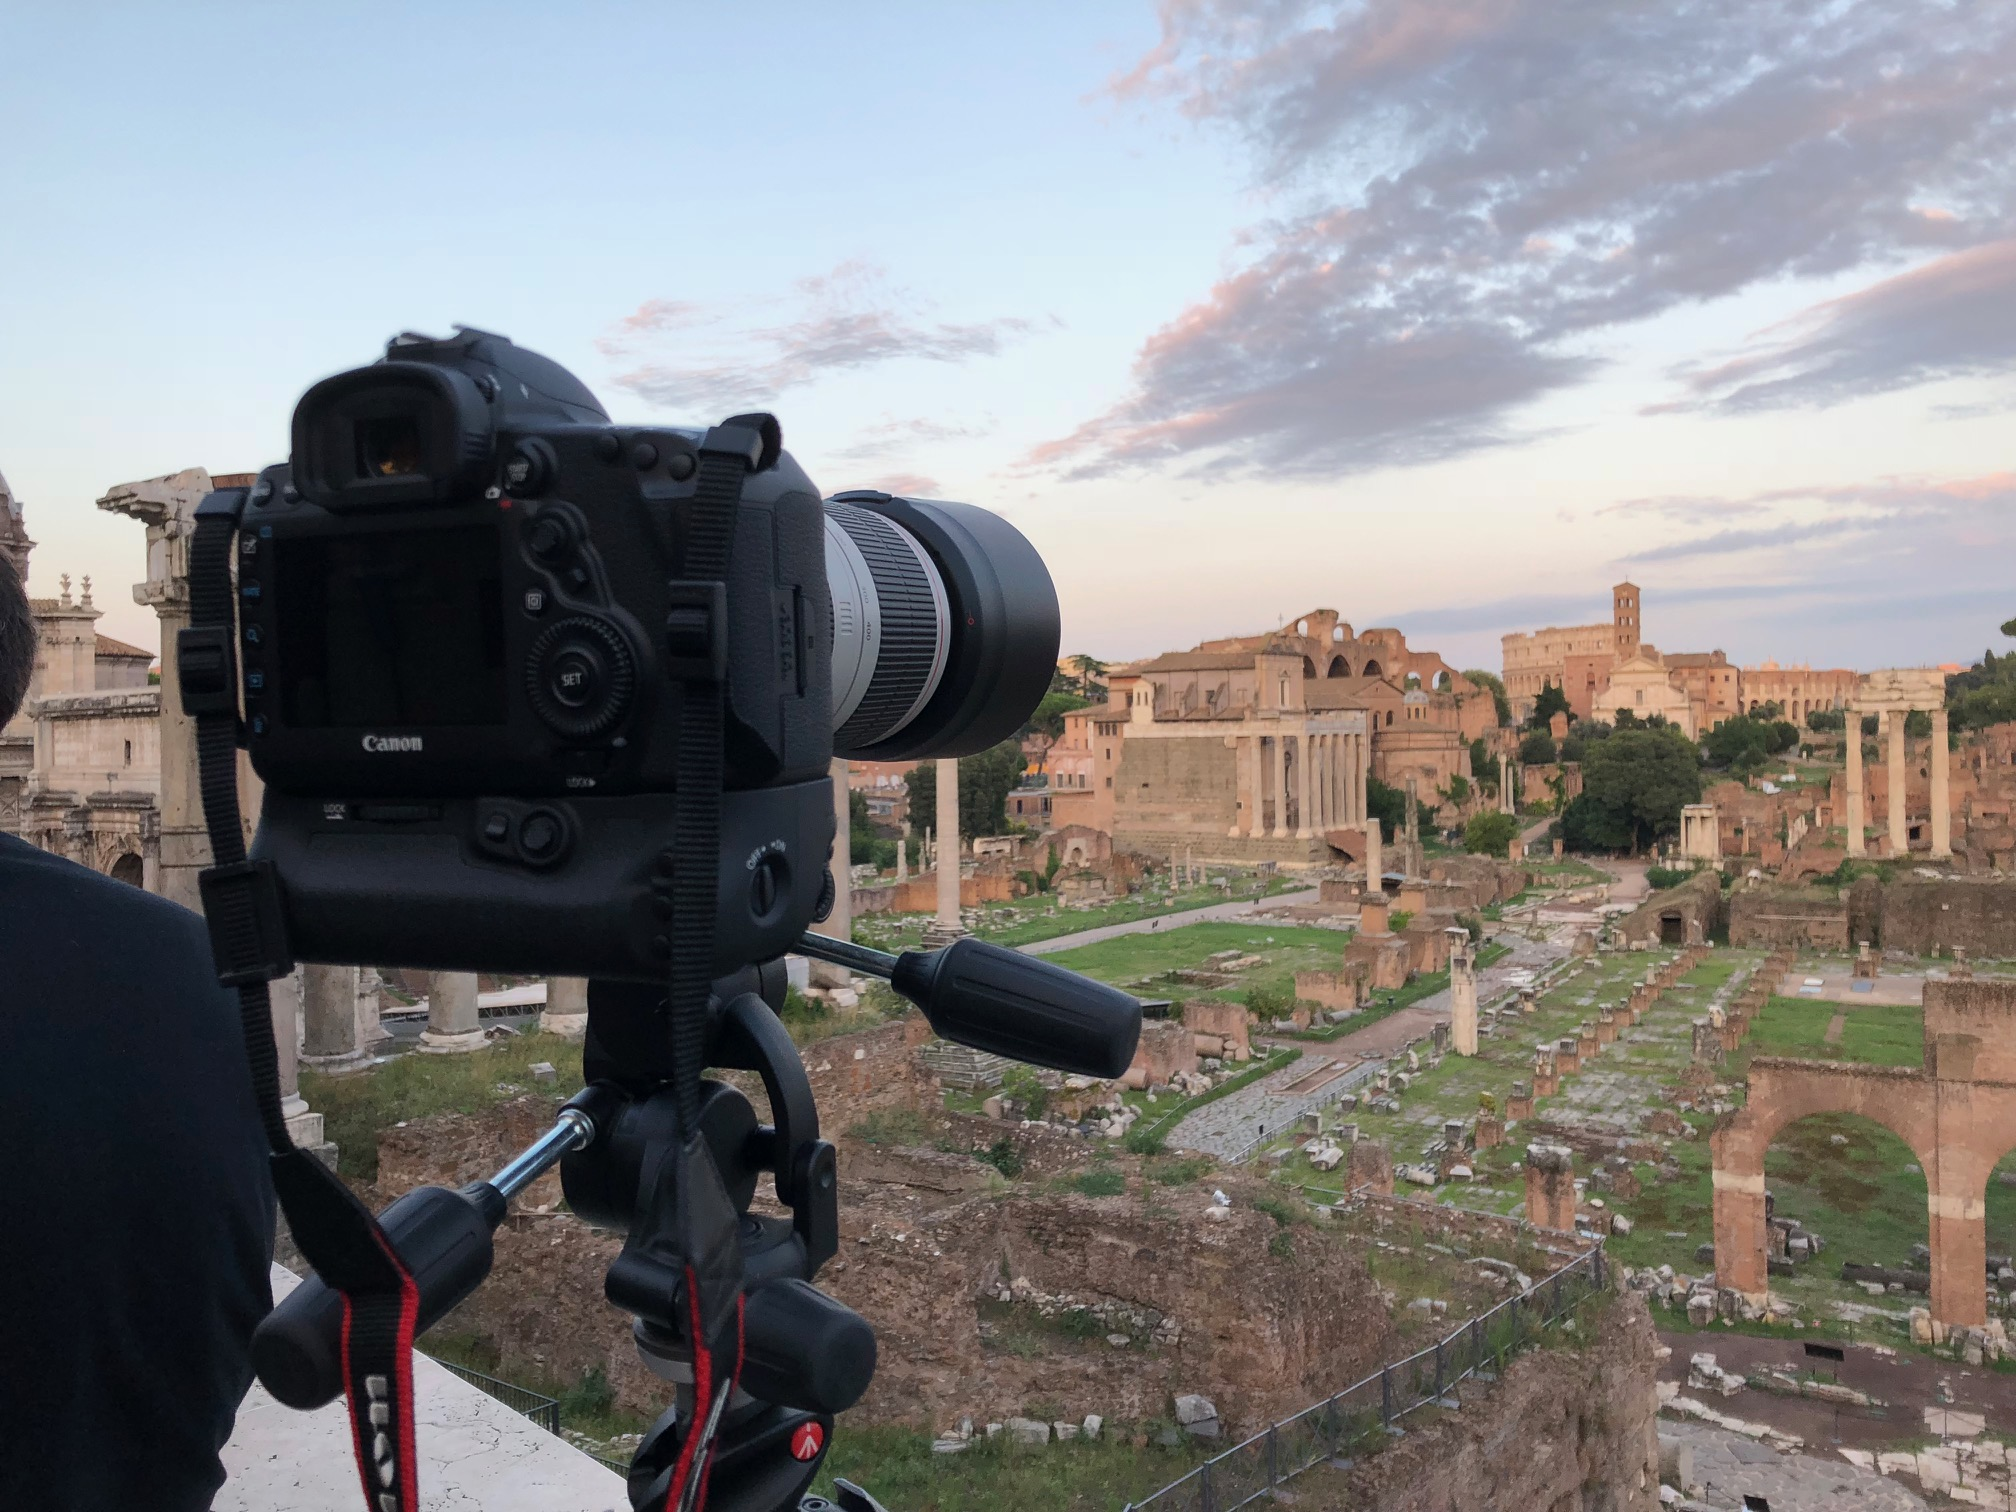 Setup ready to go! On the background, the Roman Forum and the Colosseum